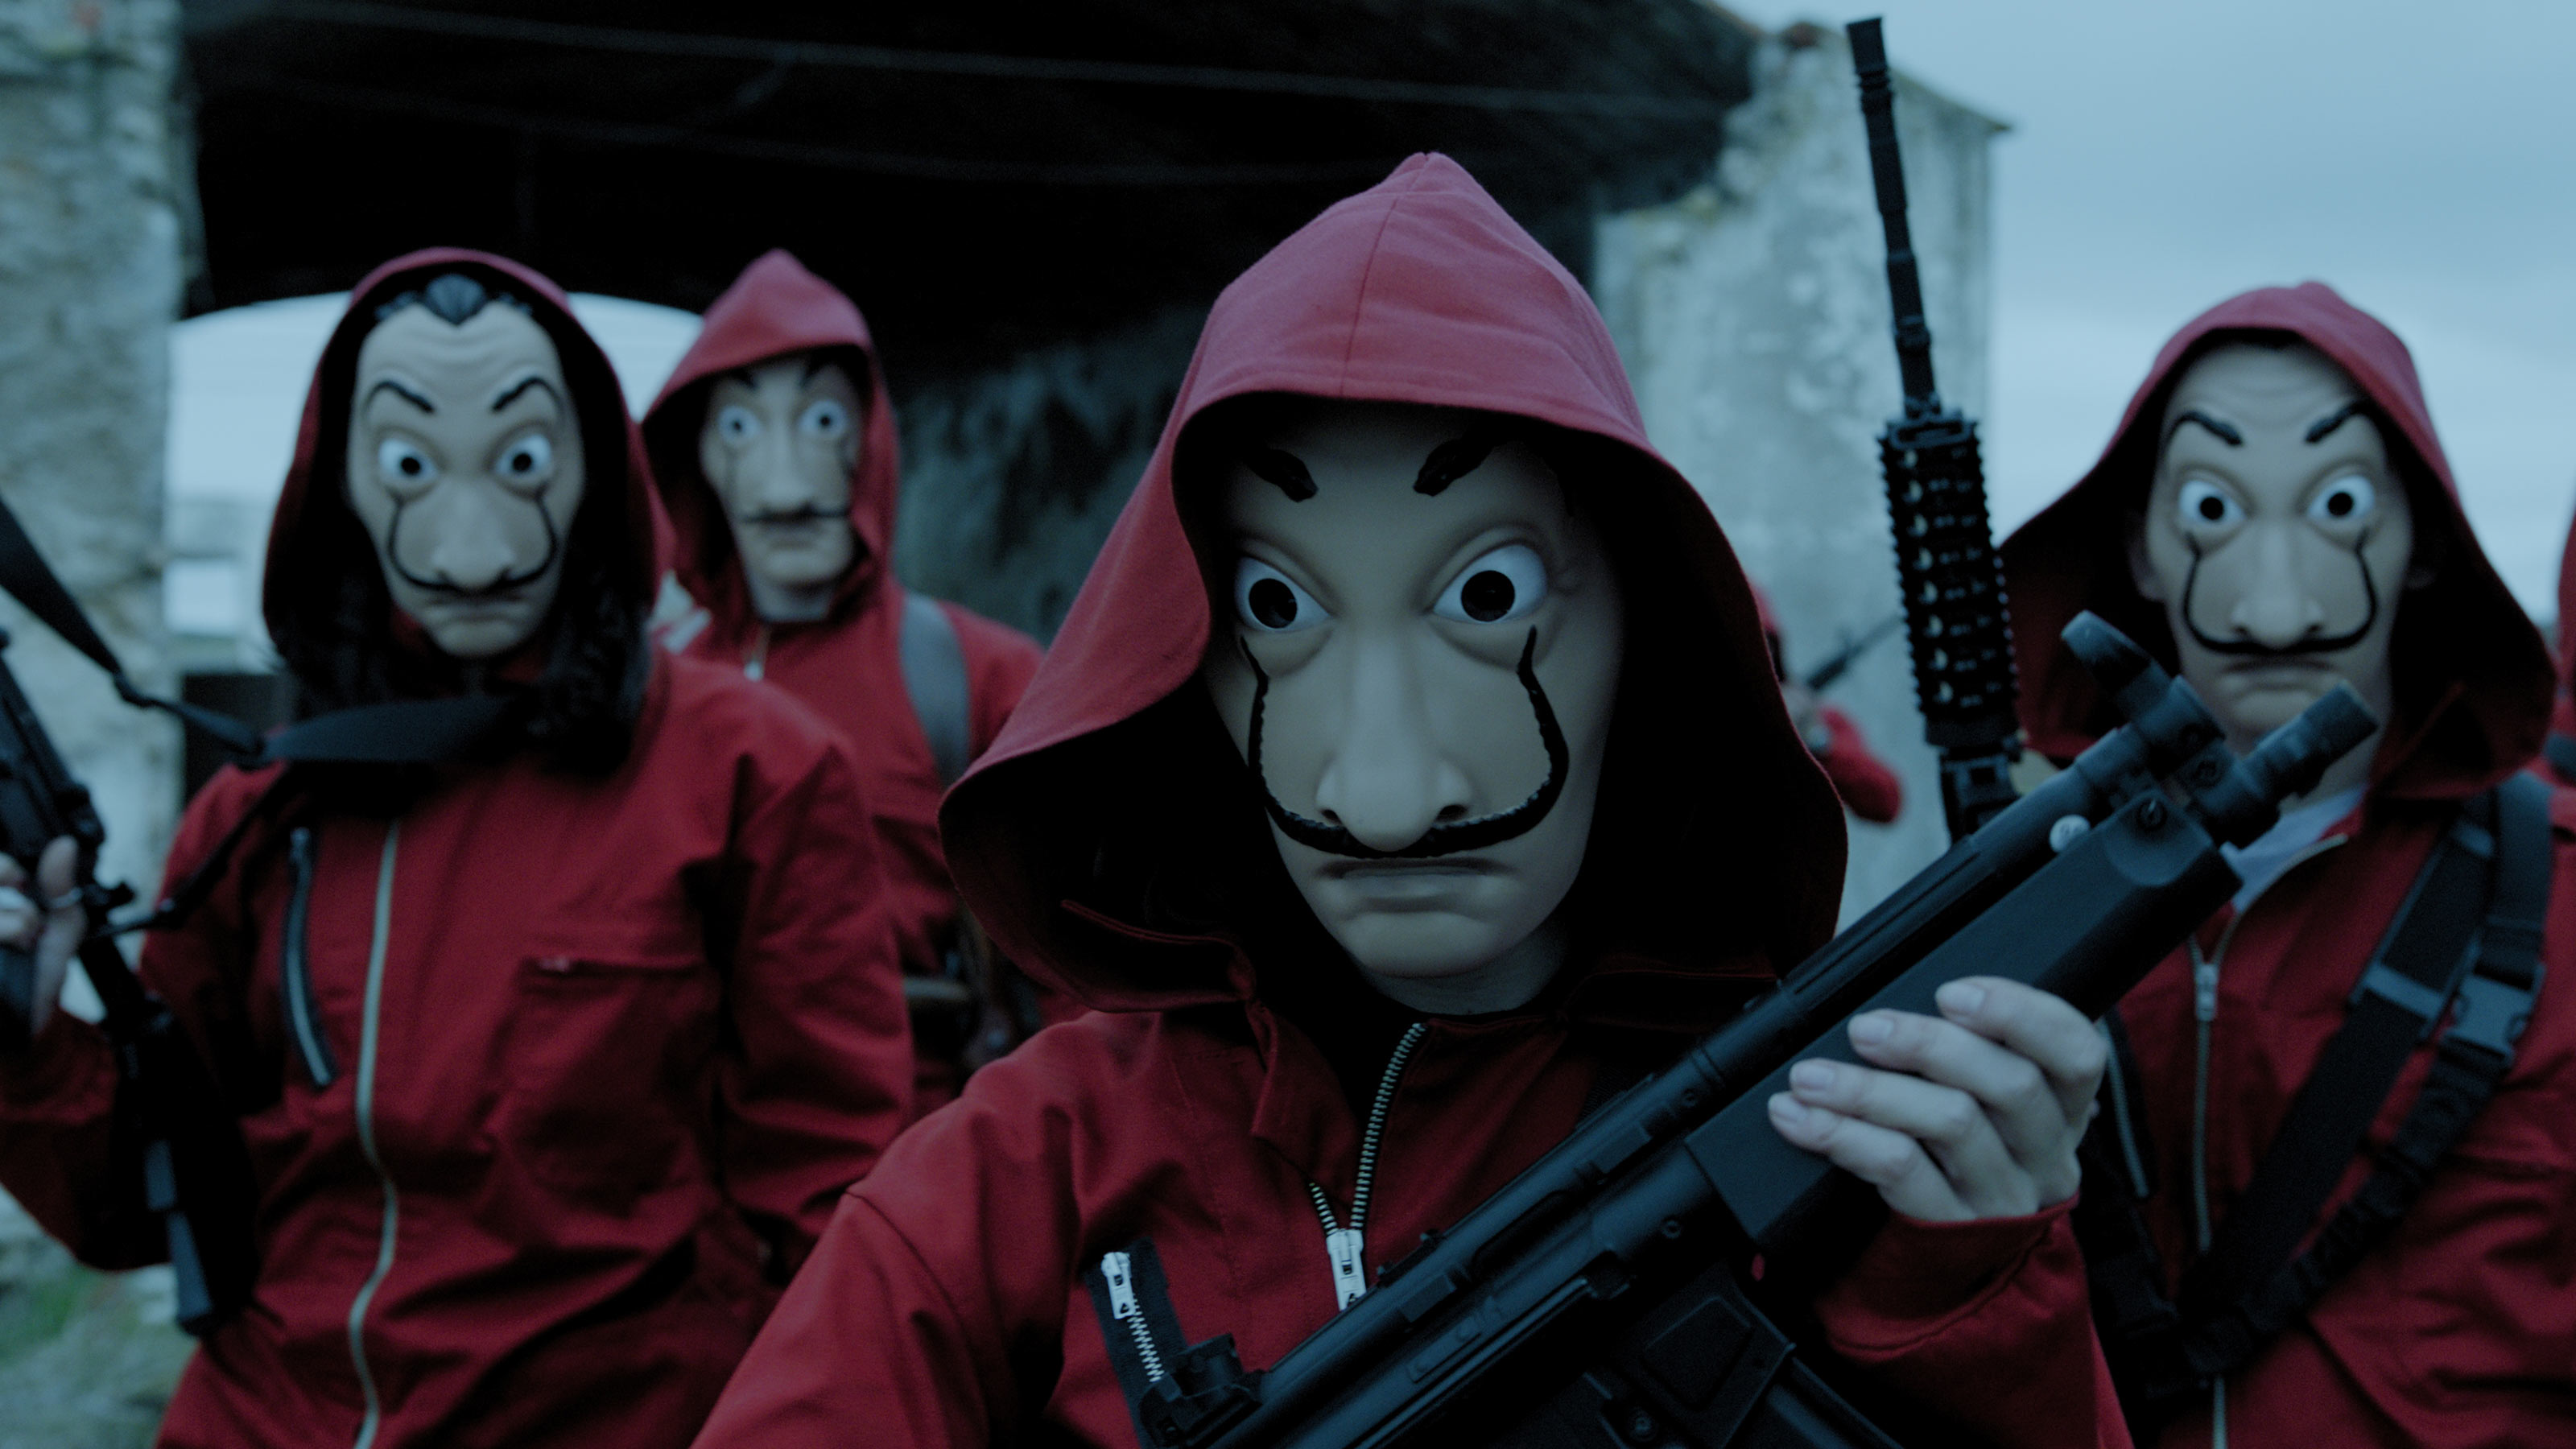 Review: Money Heist Part 4